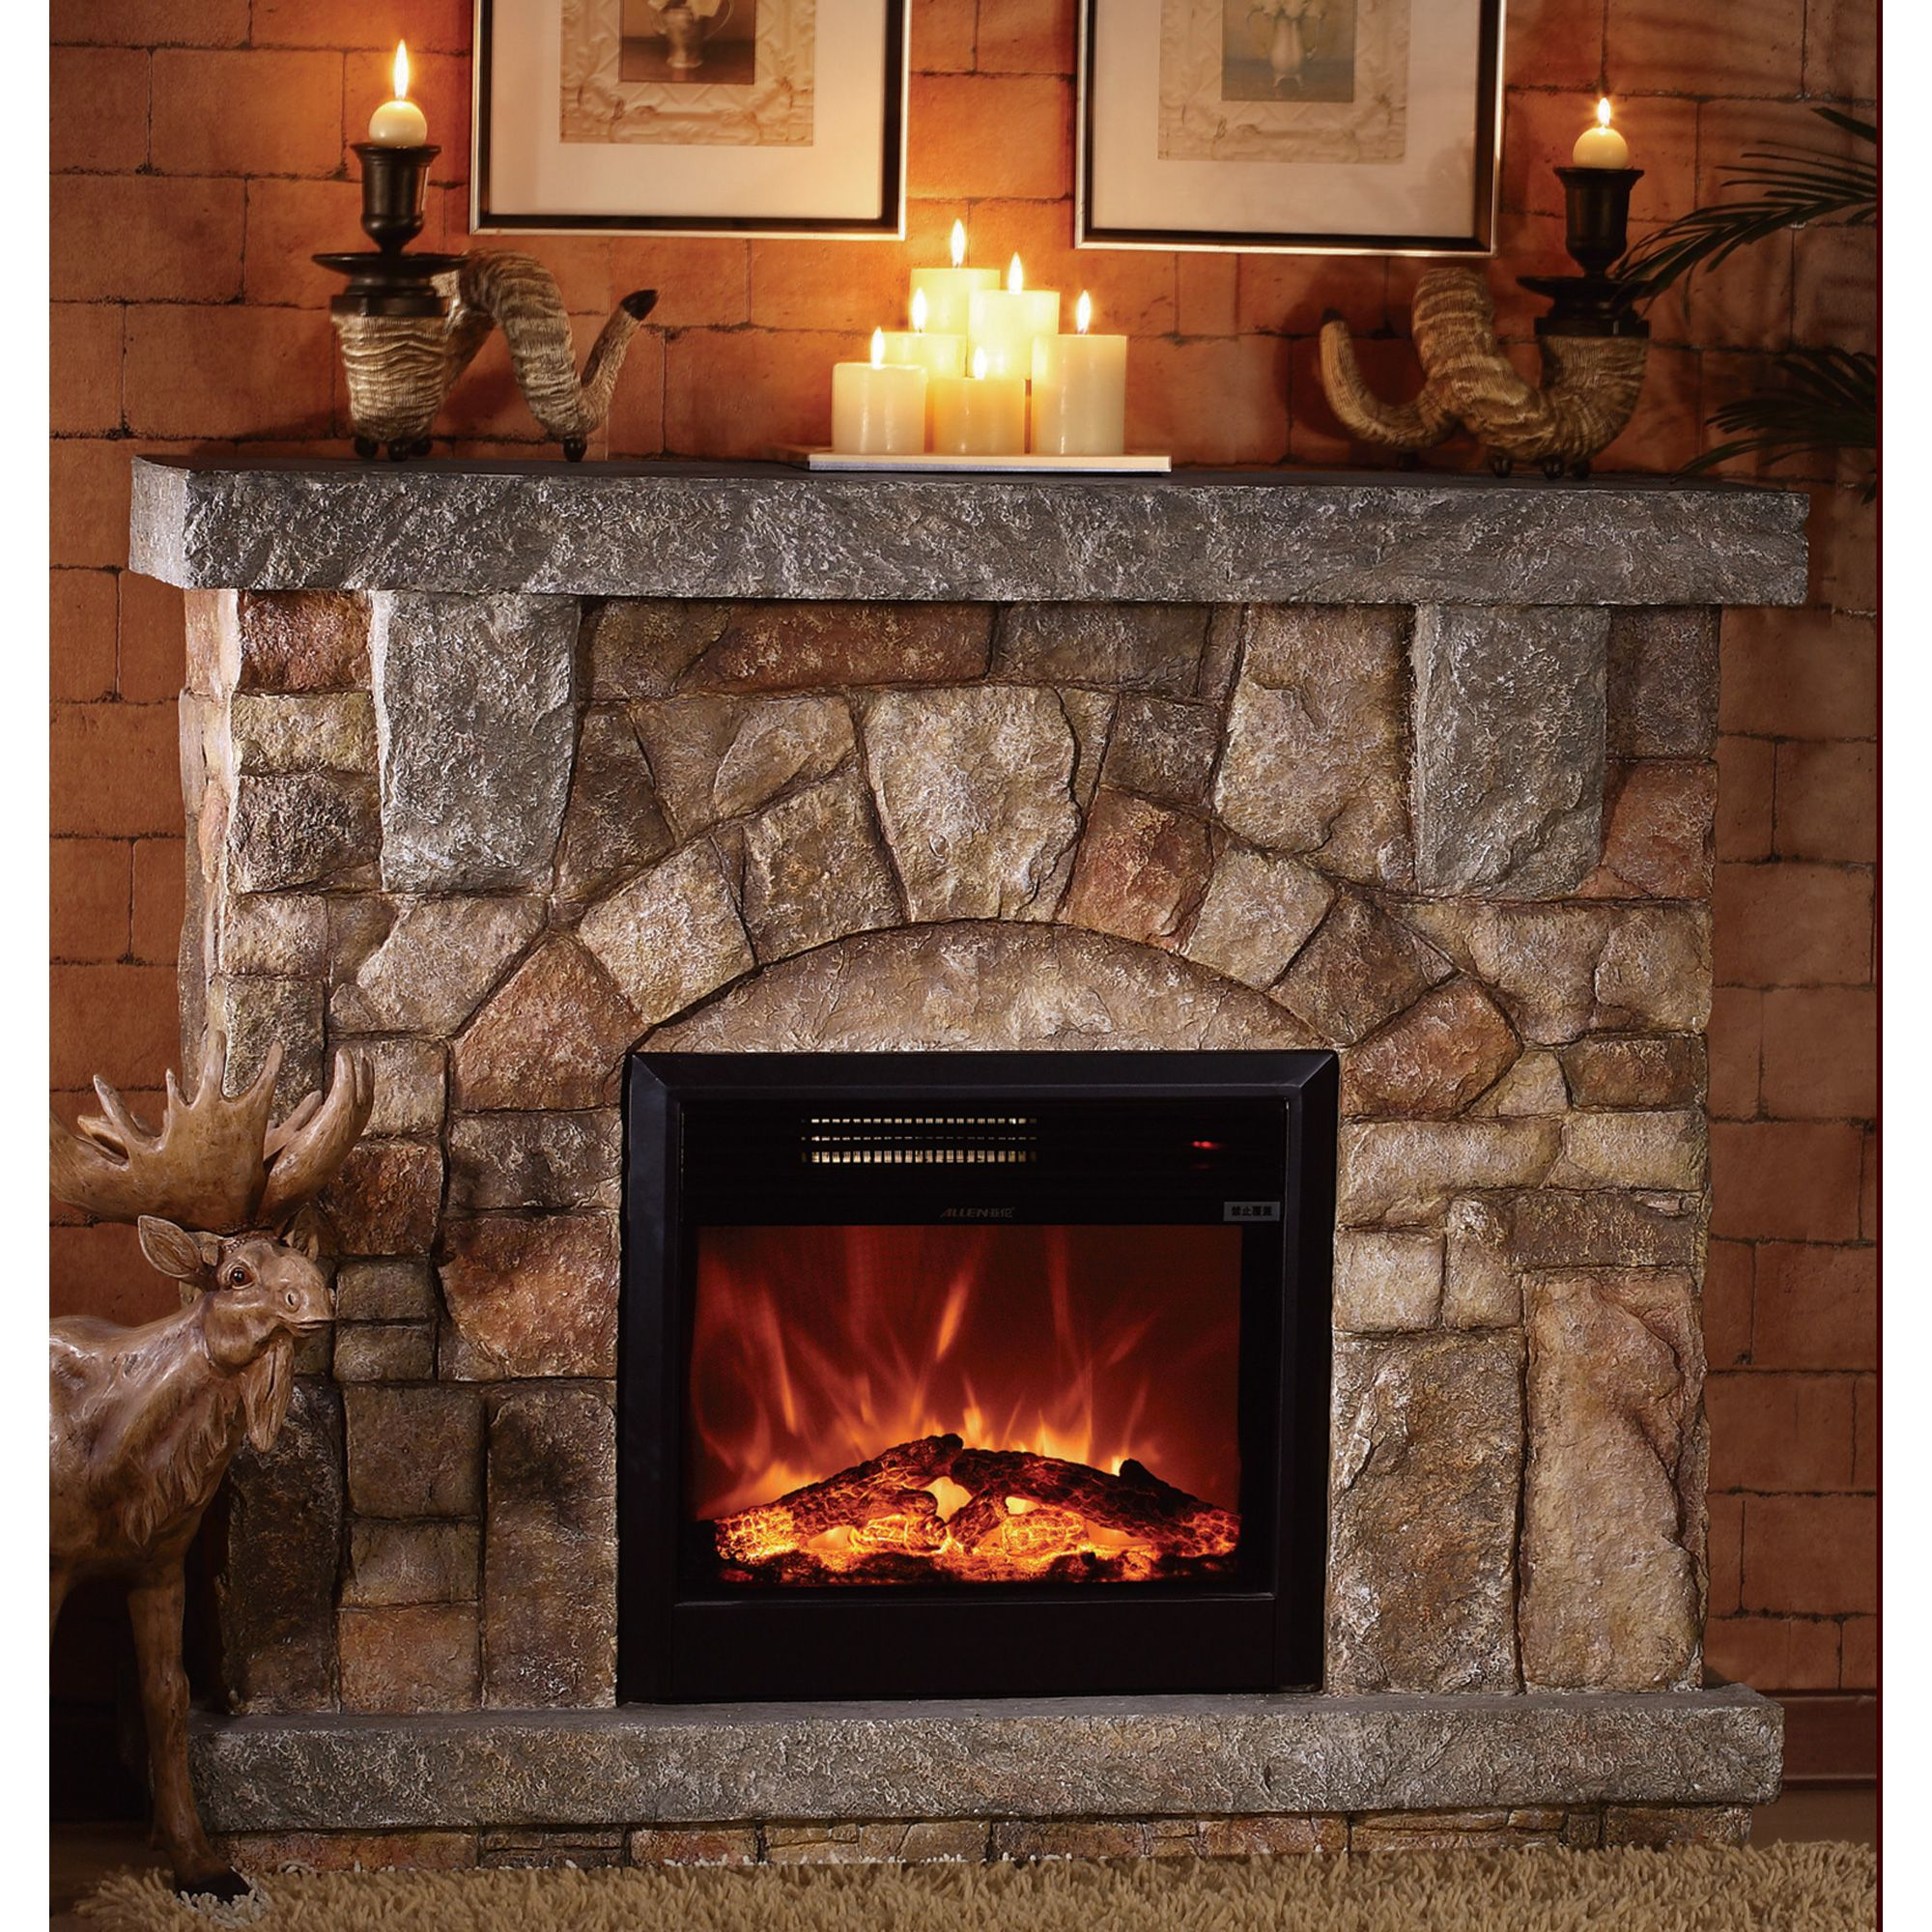 Unifire Polystone Electric Fireplace With Mantel 4400 Btu Model Wf01512 Electr Electric Fireplace With Mantel Stone Electric Fireplace Electric Fireplace